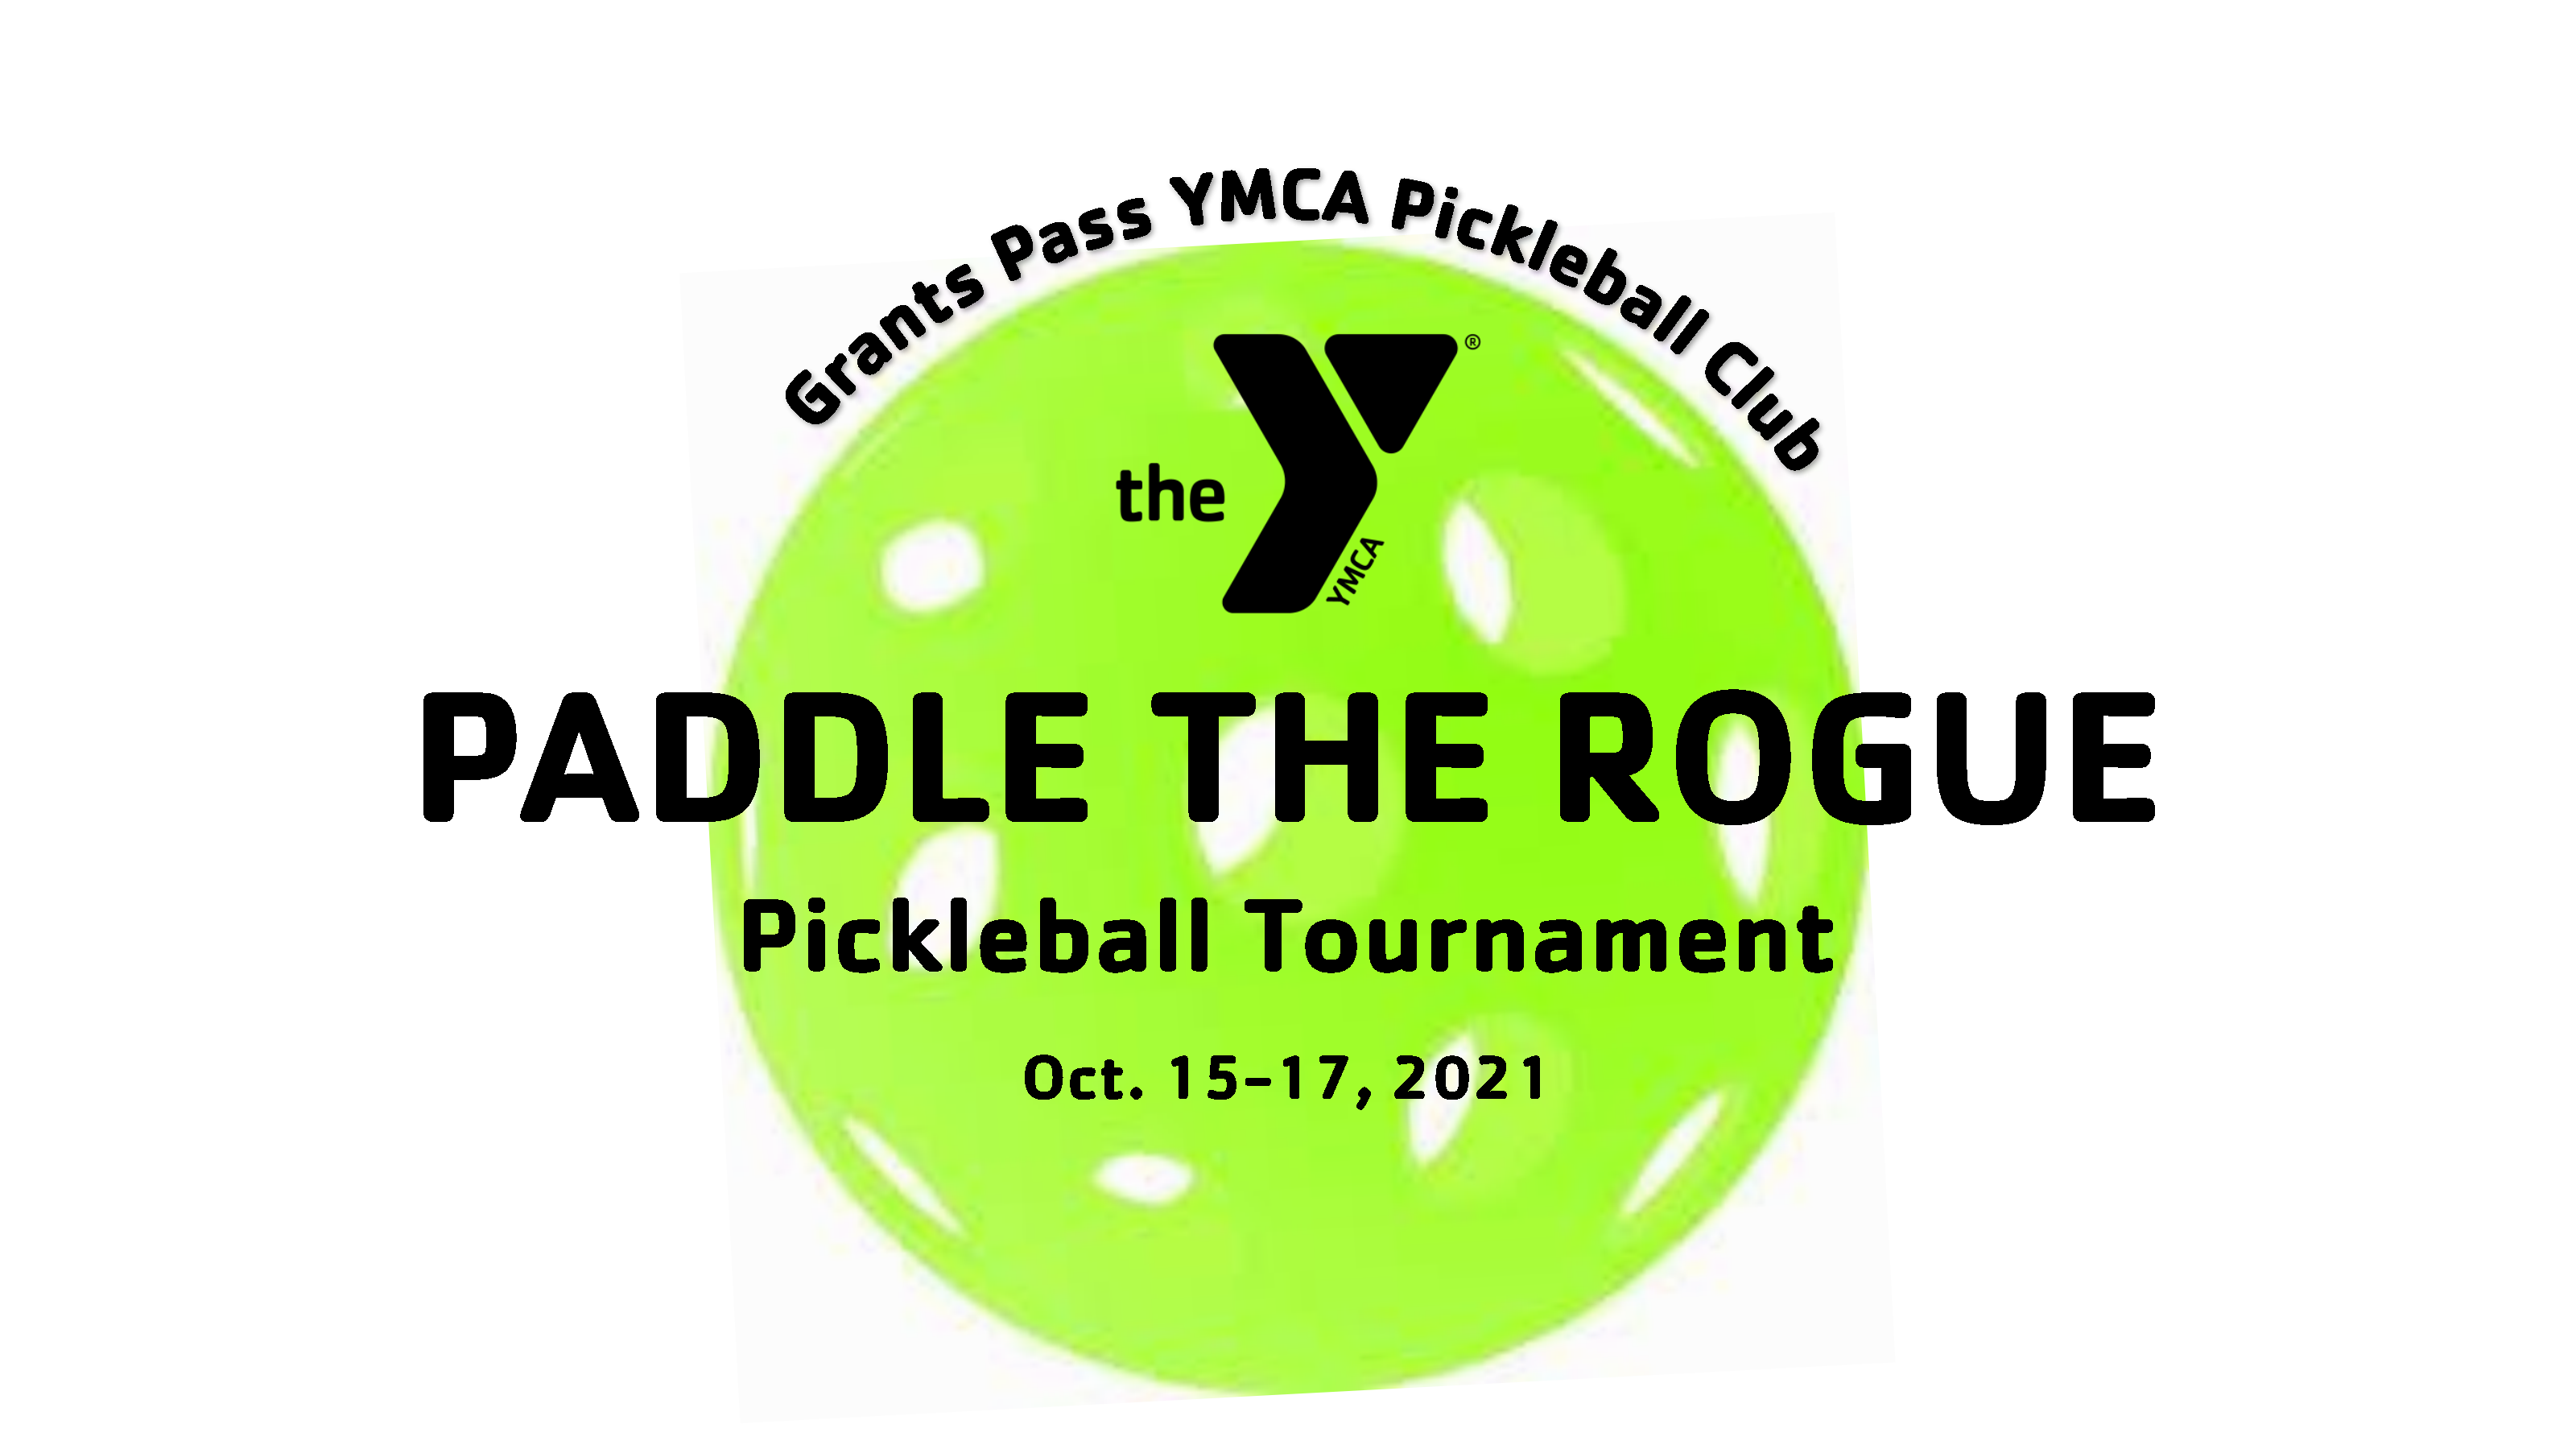 Click here to register for the upcoming tournament